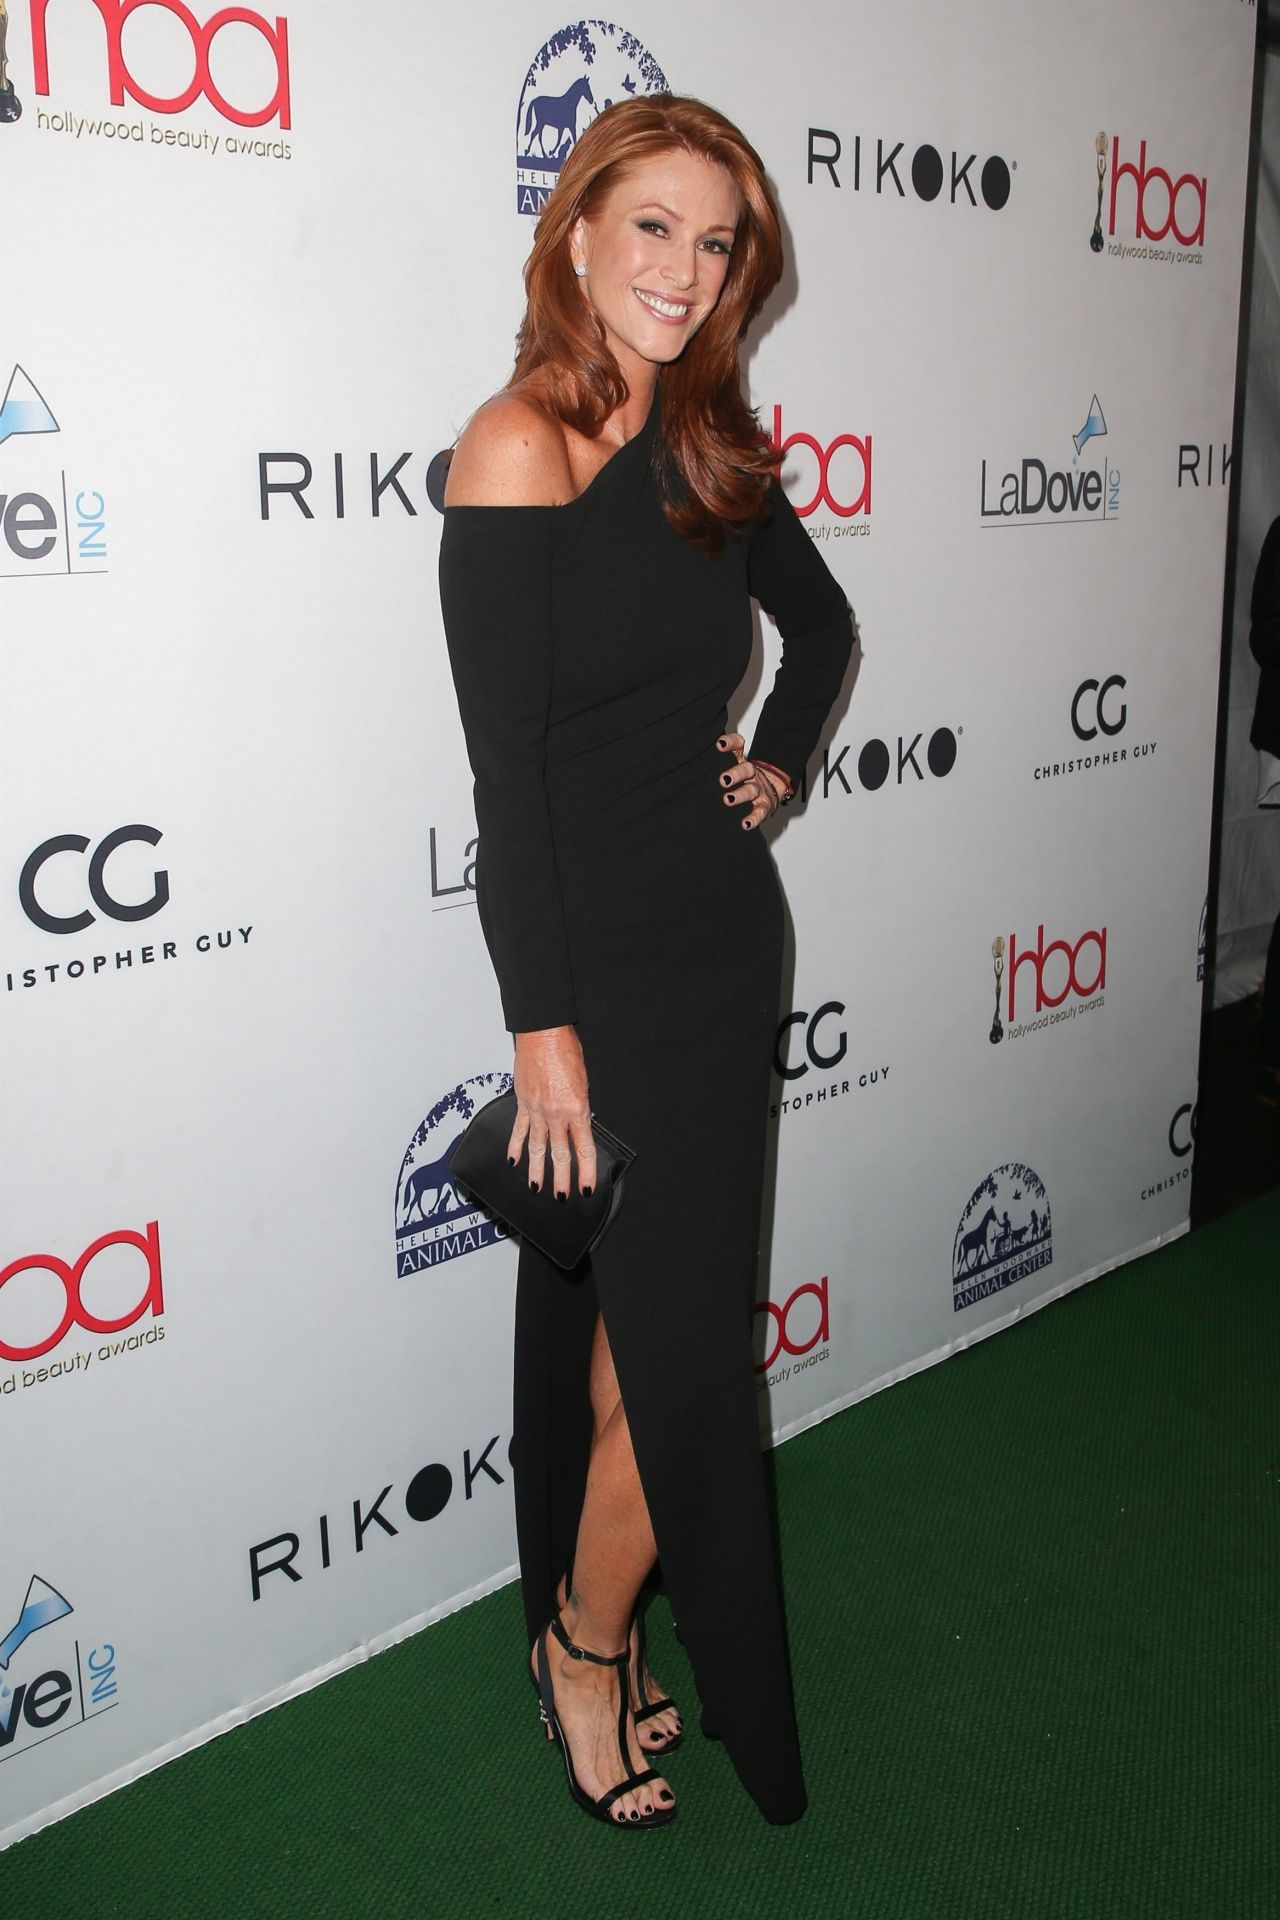 https://celebmafia.com/wp-content/uploads/2018/02/angie-everhart-2018-hollywood-beauty-awards-in-la-9.jpg